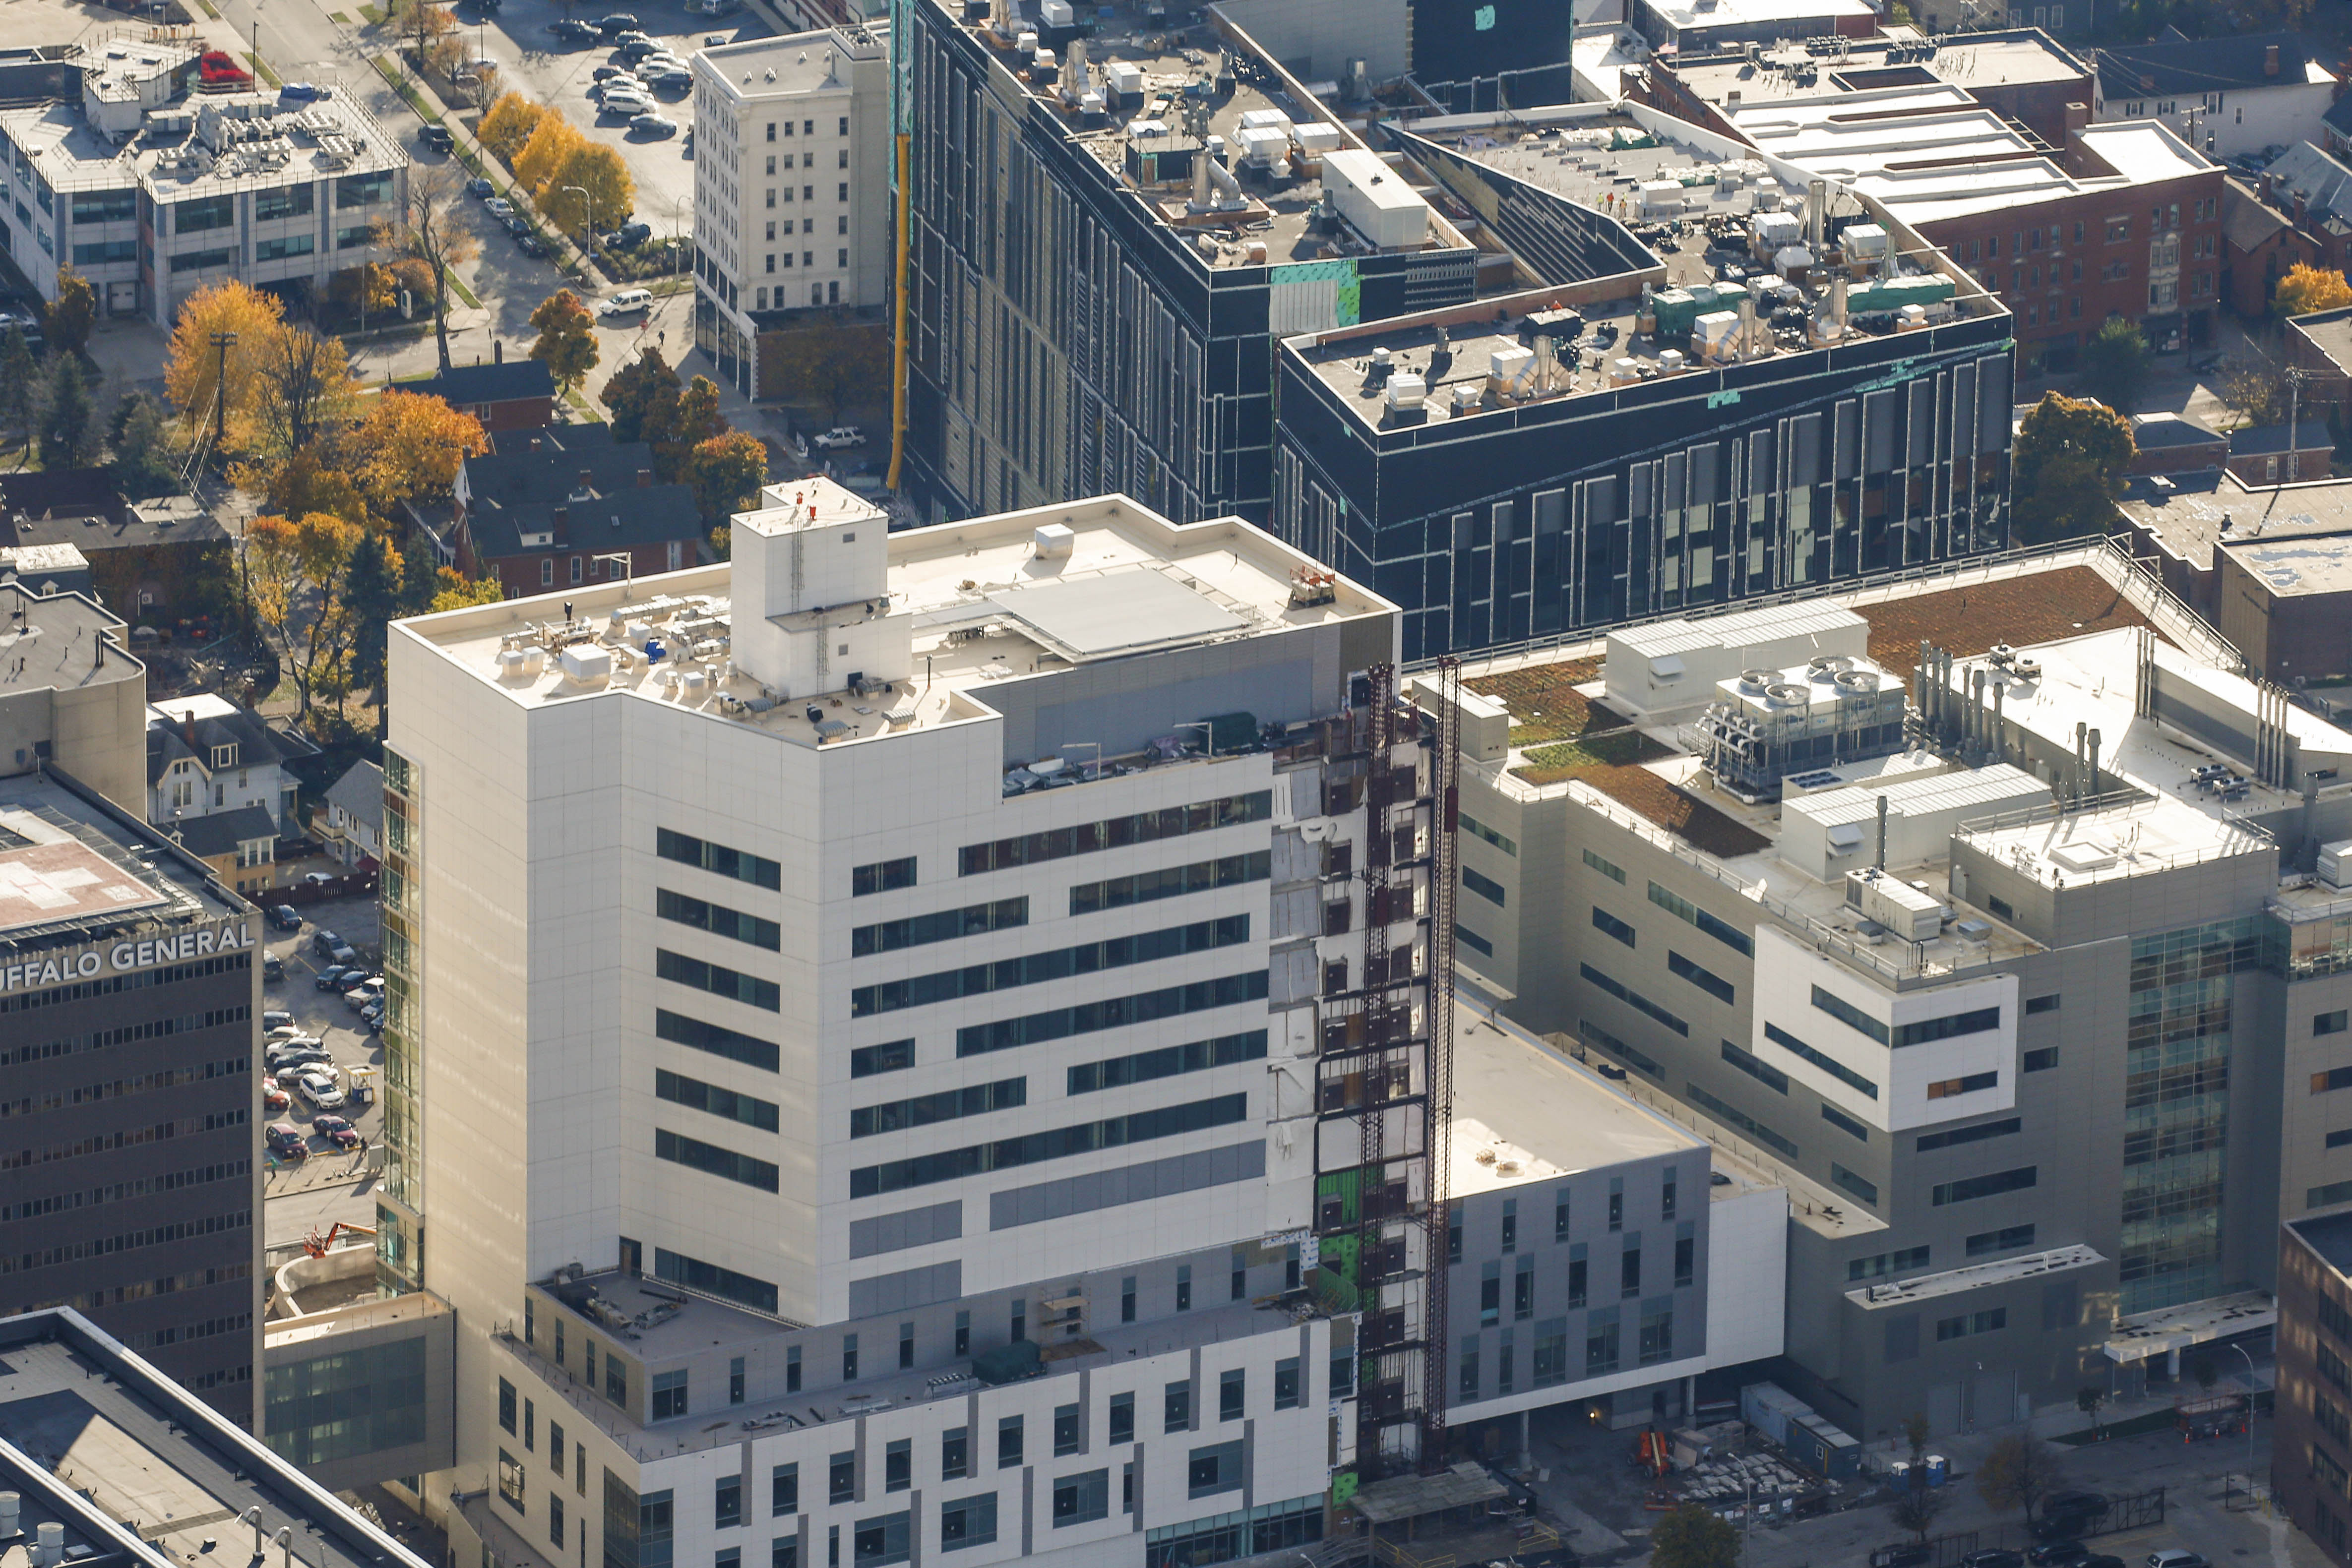 Conventus, at right, connects with both Oishei Children's Hospital, left, and UB's Medical School, top. (Derek Gee/Buffalo News file photo)